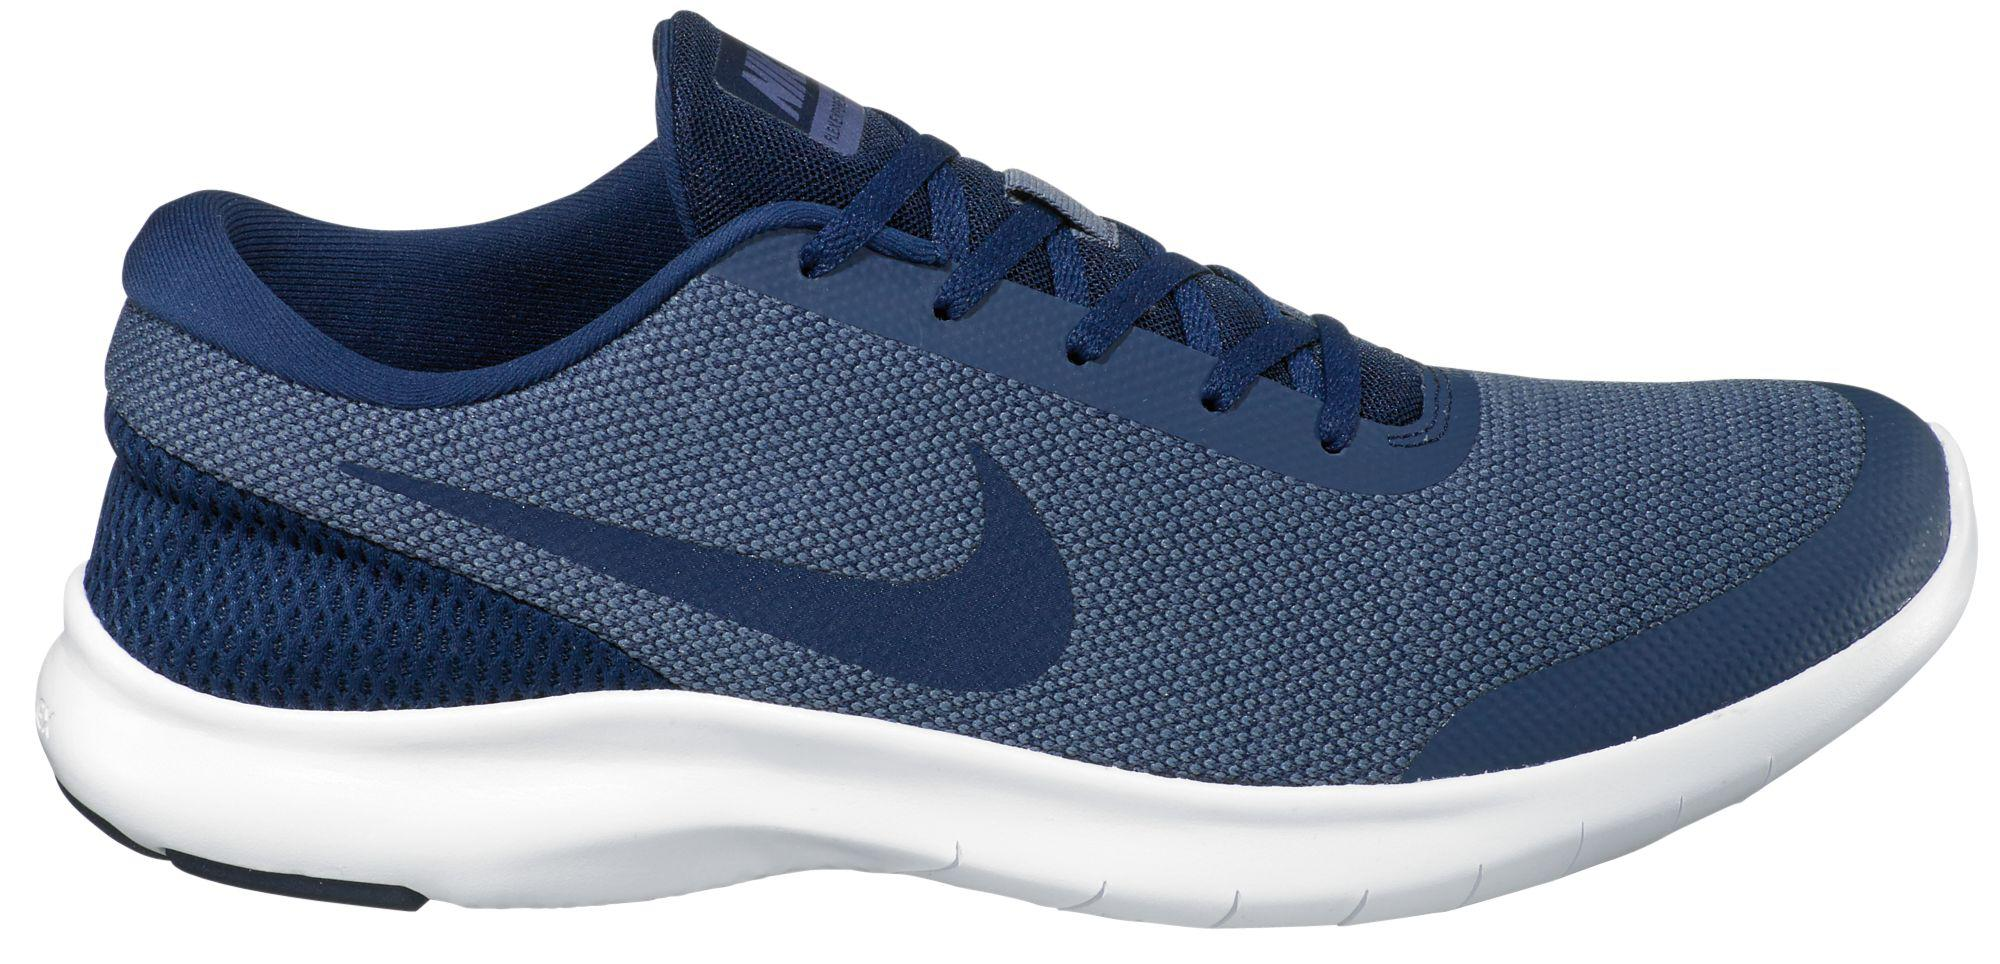 23cc4d2ca73 ... f2215af18011 Lyst - Nike Flex Experience Rn 7 Running Shoes in Blue for  Men ...